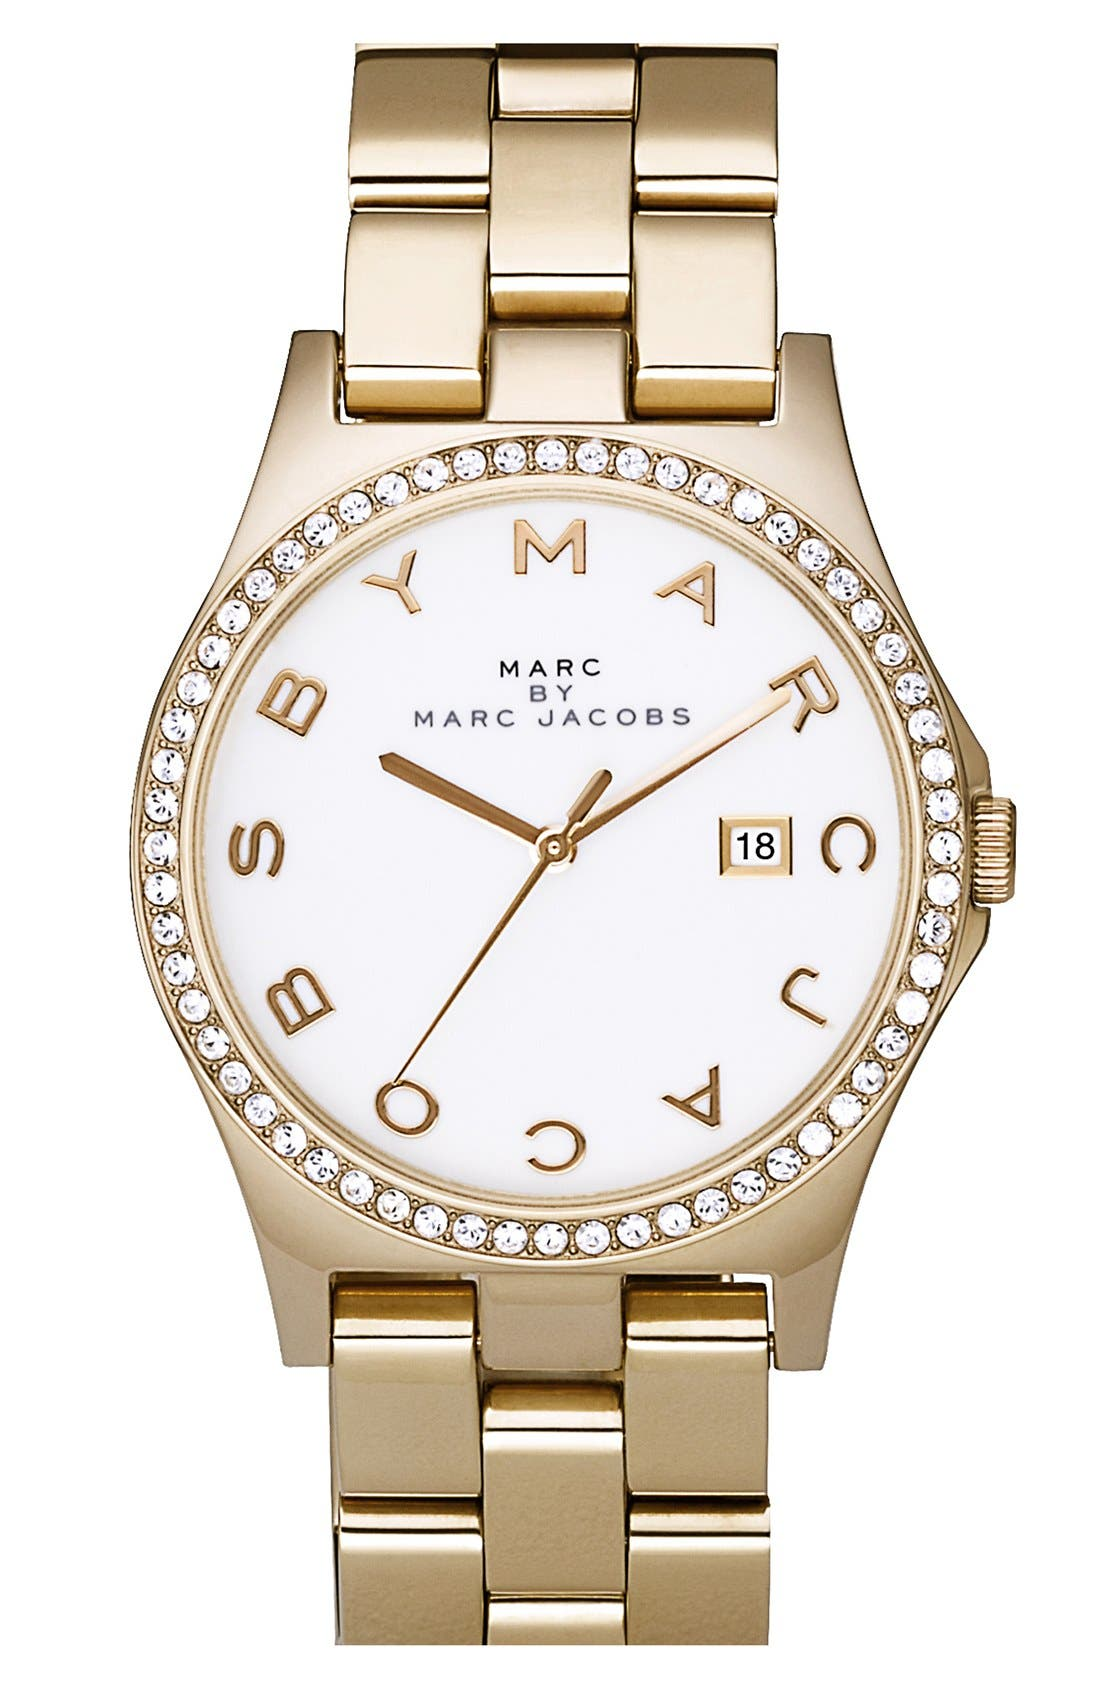 Main Image - MARC JACOBS 'Henry' Stainless Steel Watch